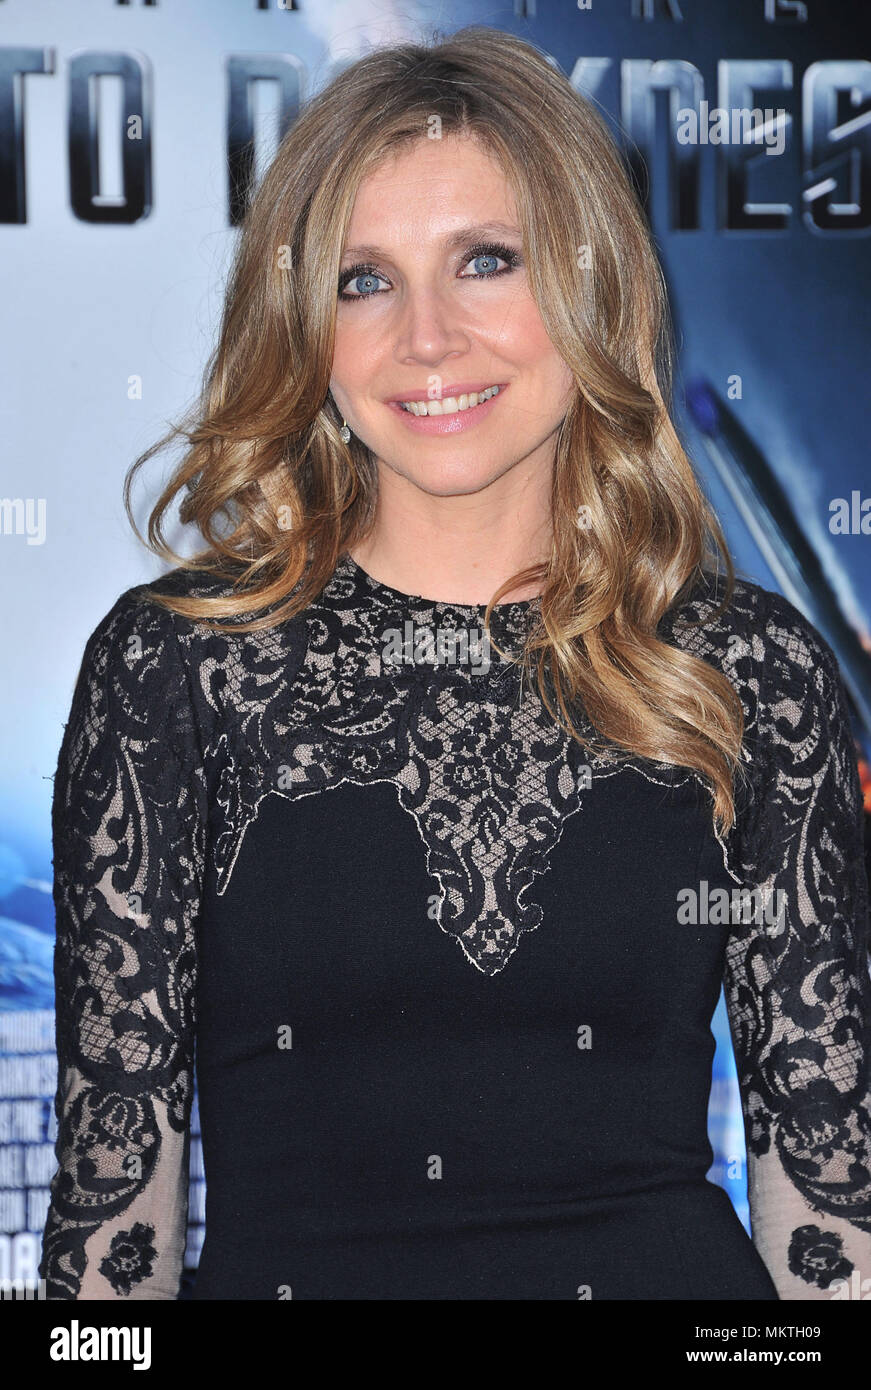 Page 3 Sarah Chalke High Resolution Stock Photography And Images Alamy